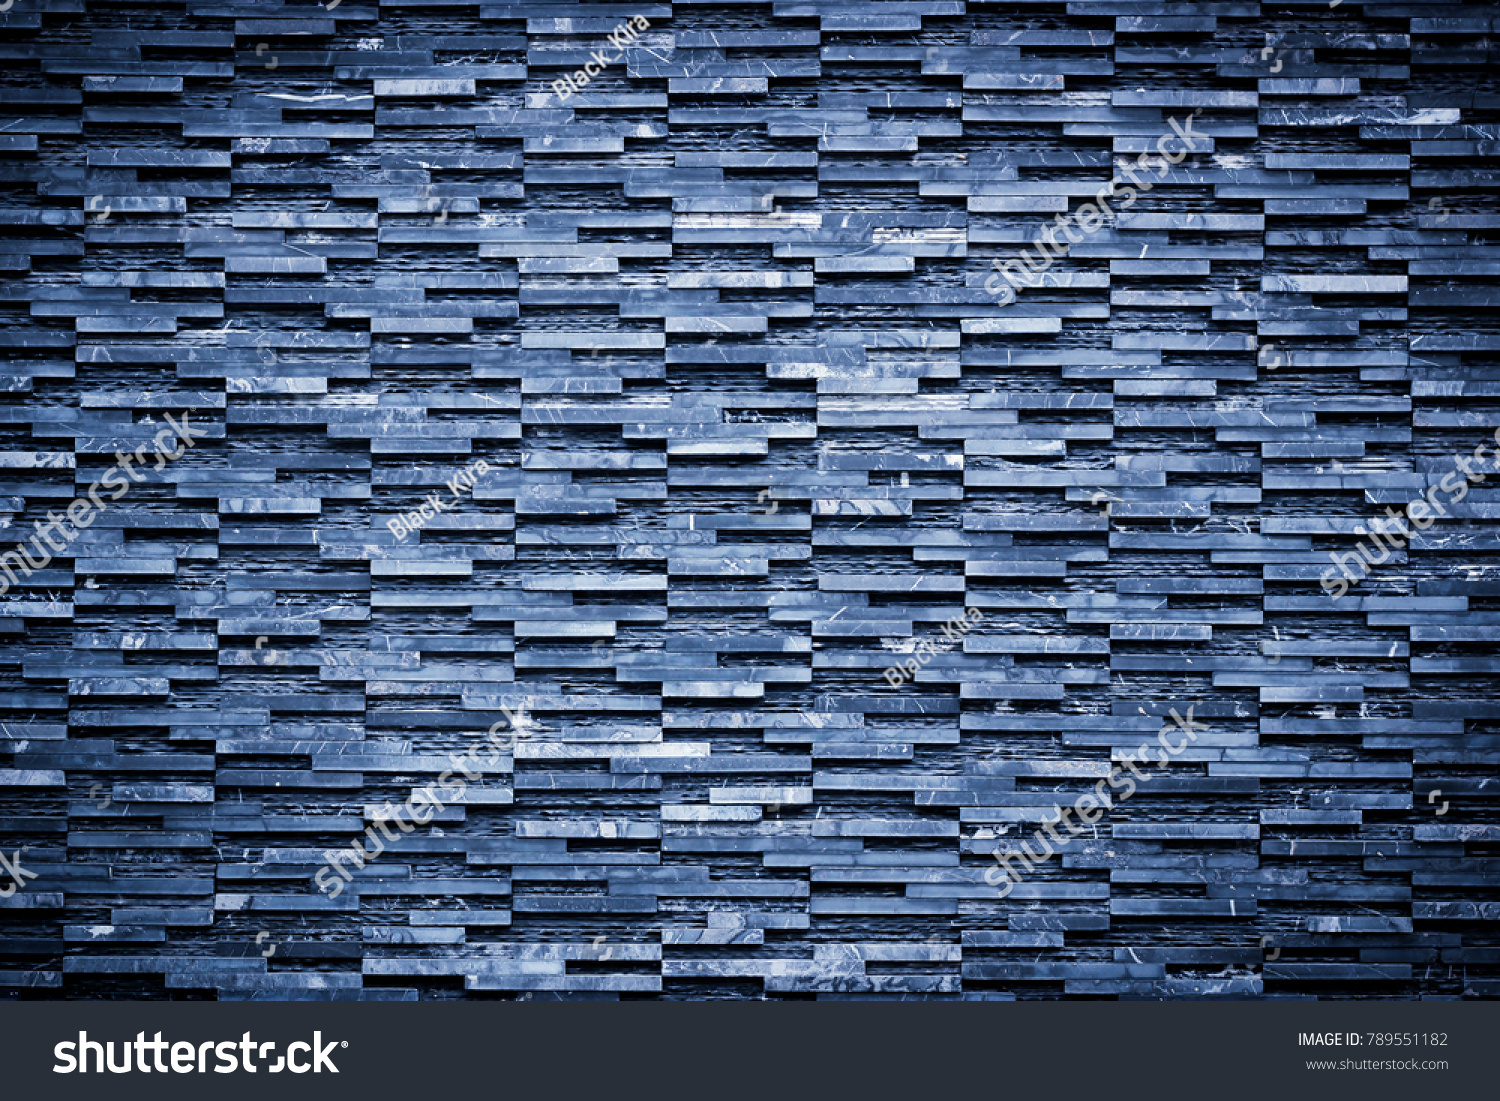 Modern Blue Rectangle Tiles Abstract Technology Stock Photo (Safe to ...